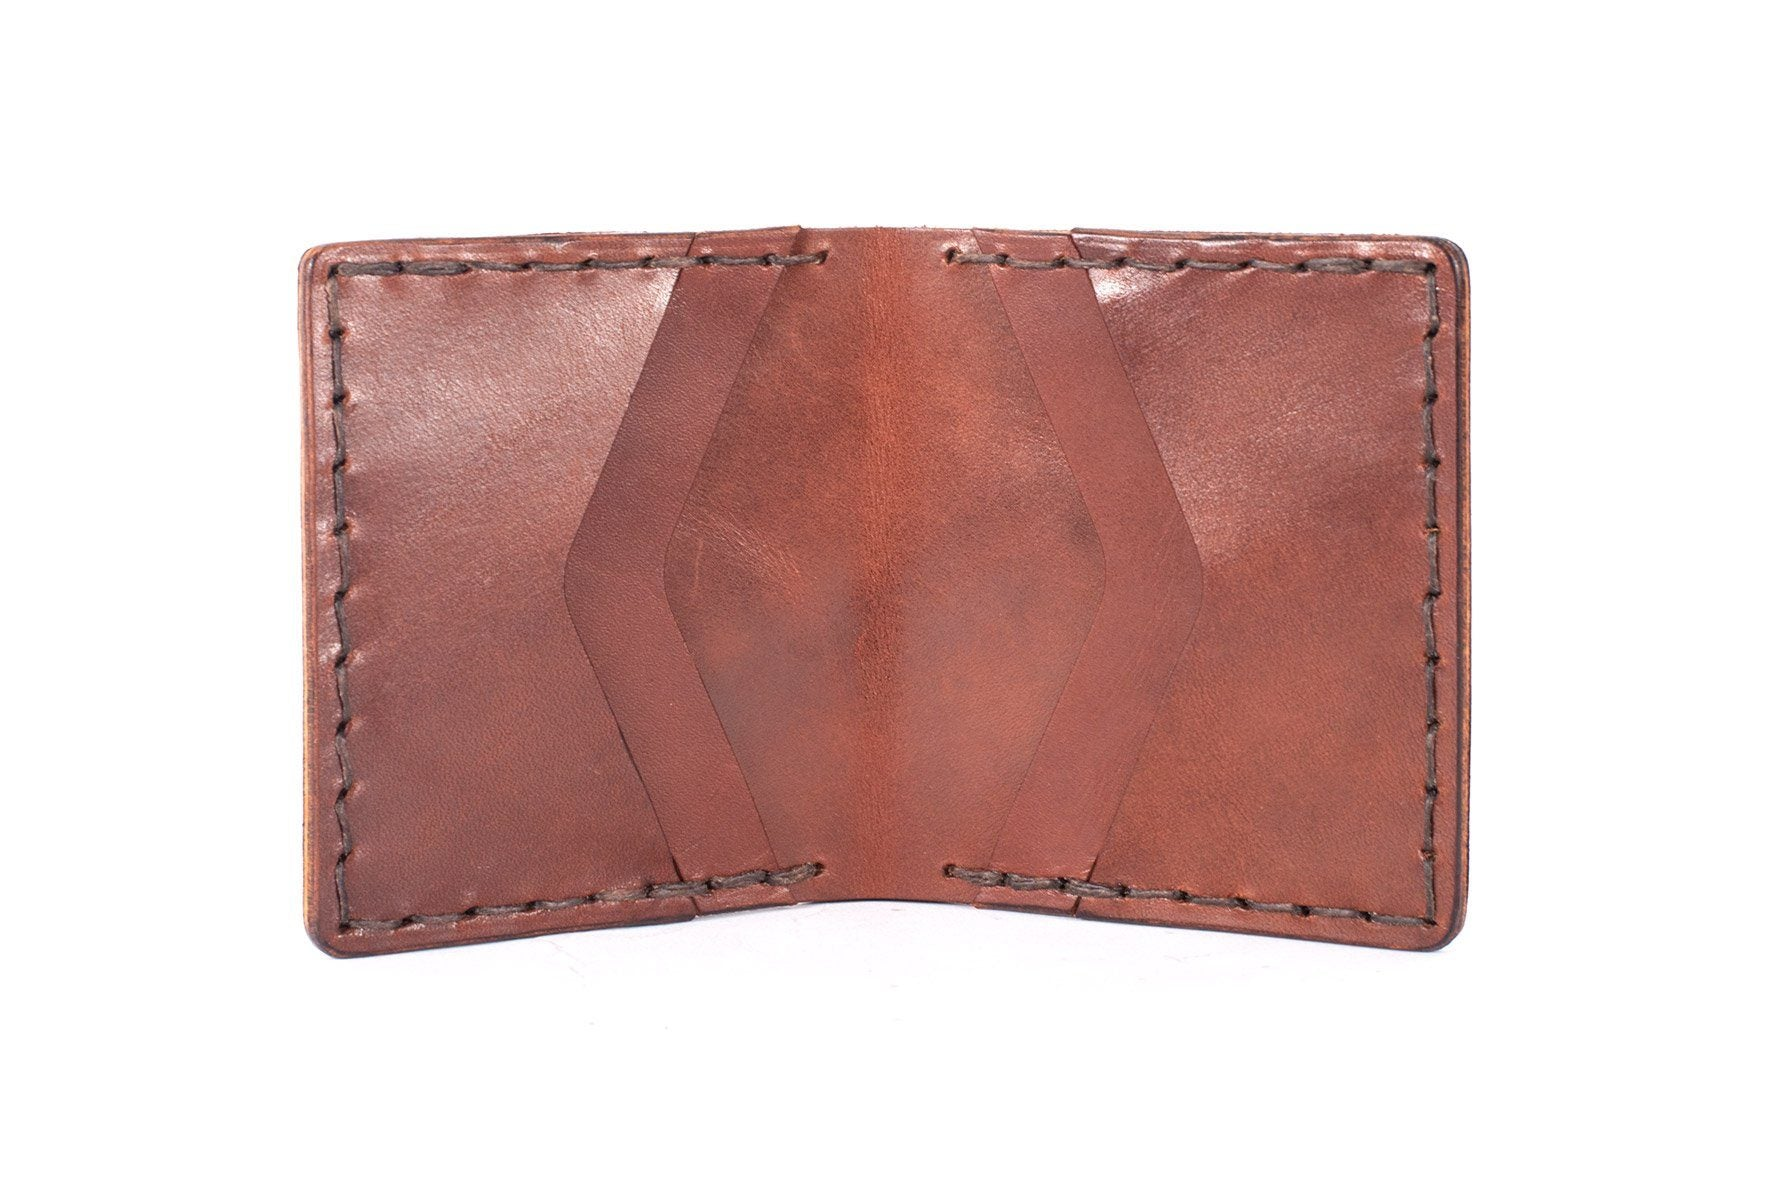 SINGLE DELUXE LEATHER WALLET